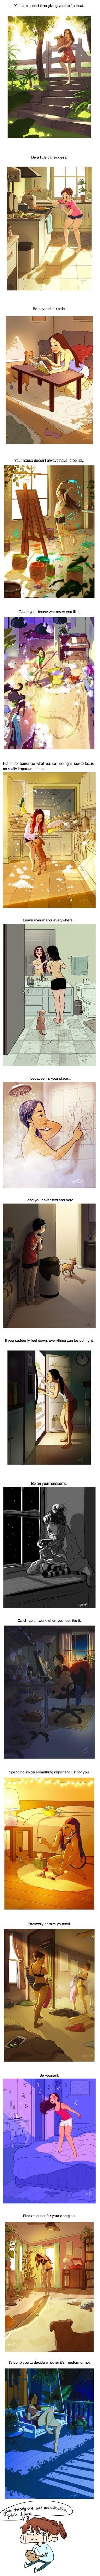 18 Heart-Warming Cartoons Showing The Happiness Of Living Alone